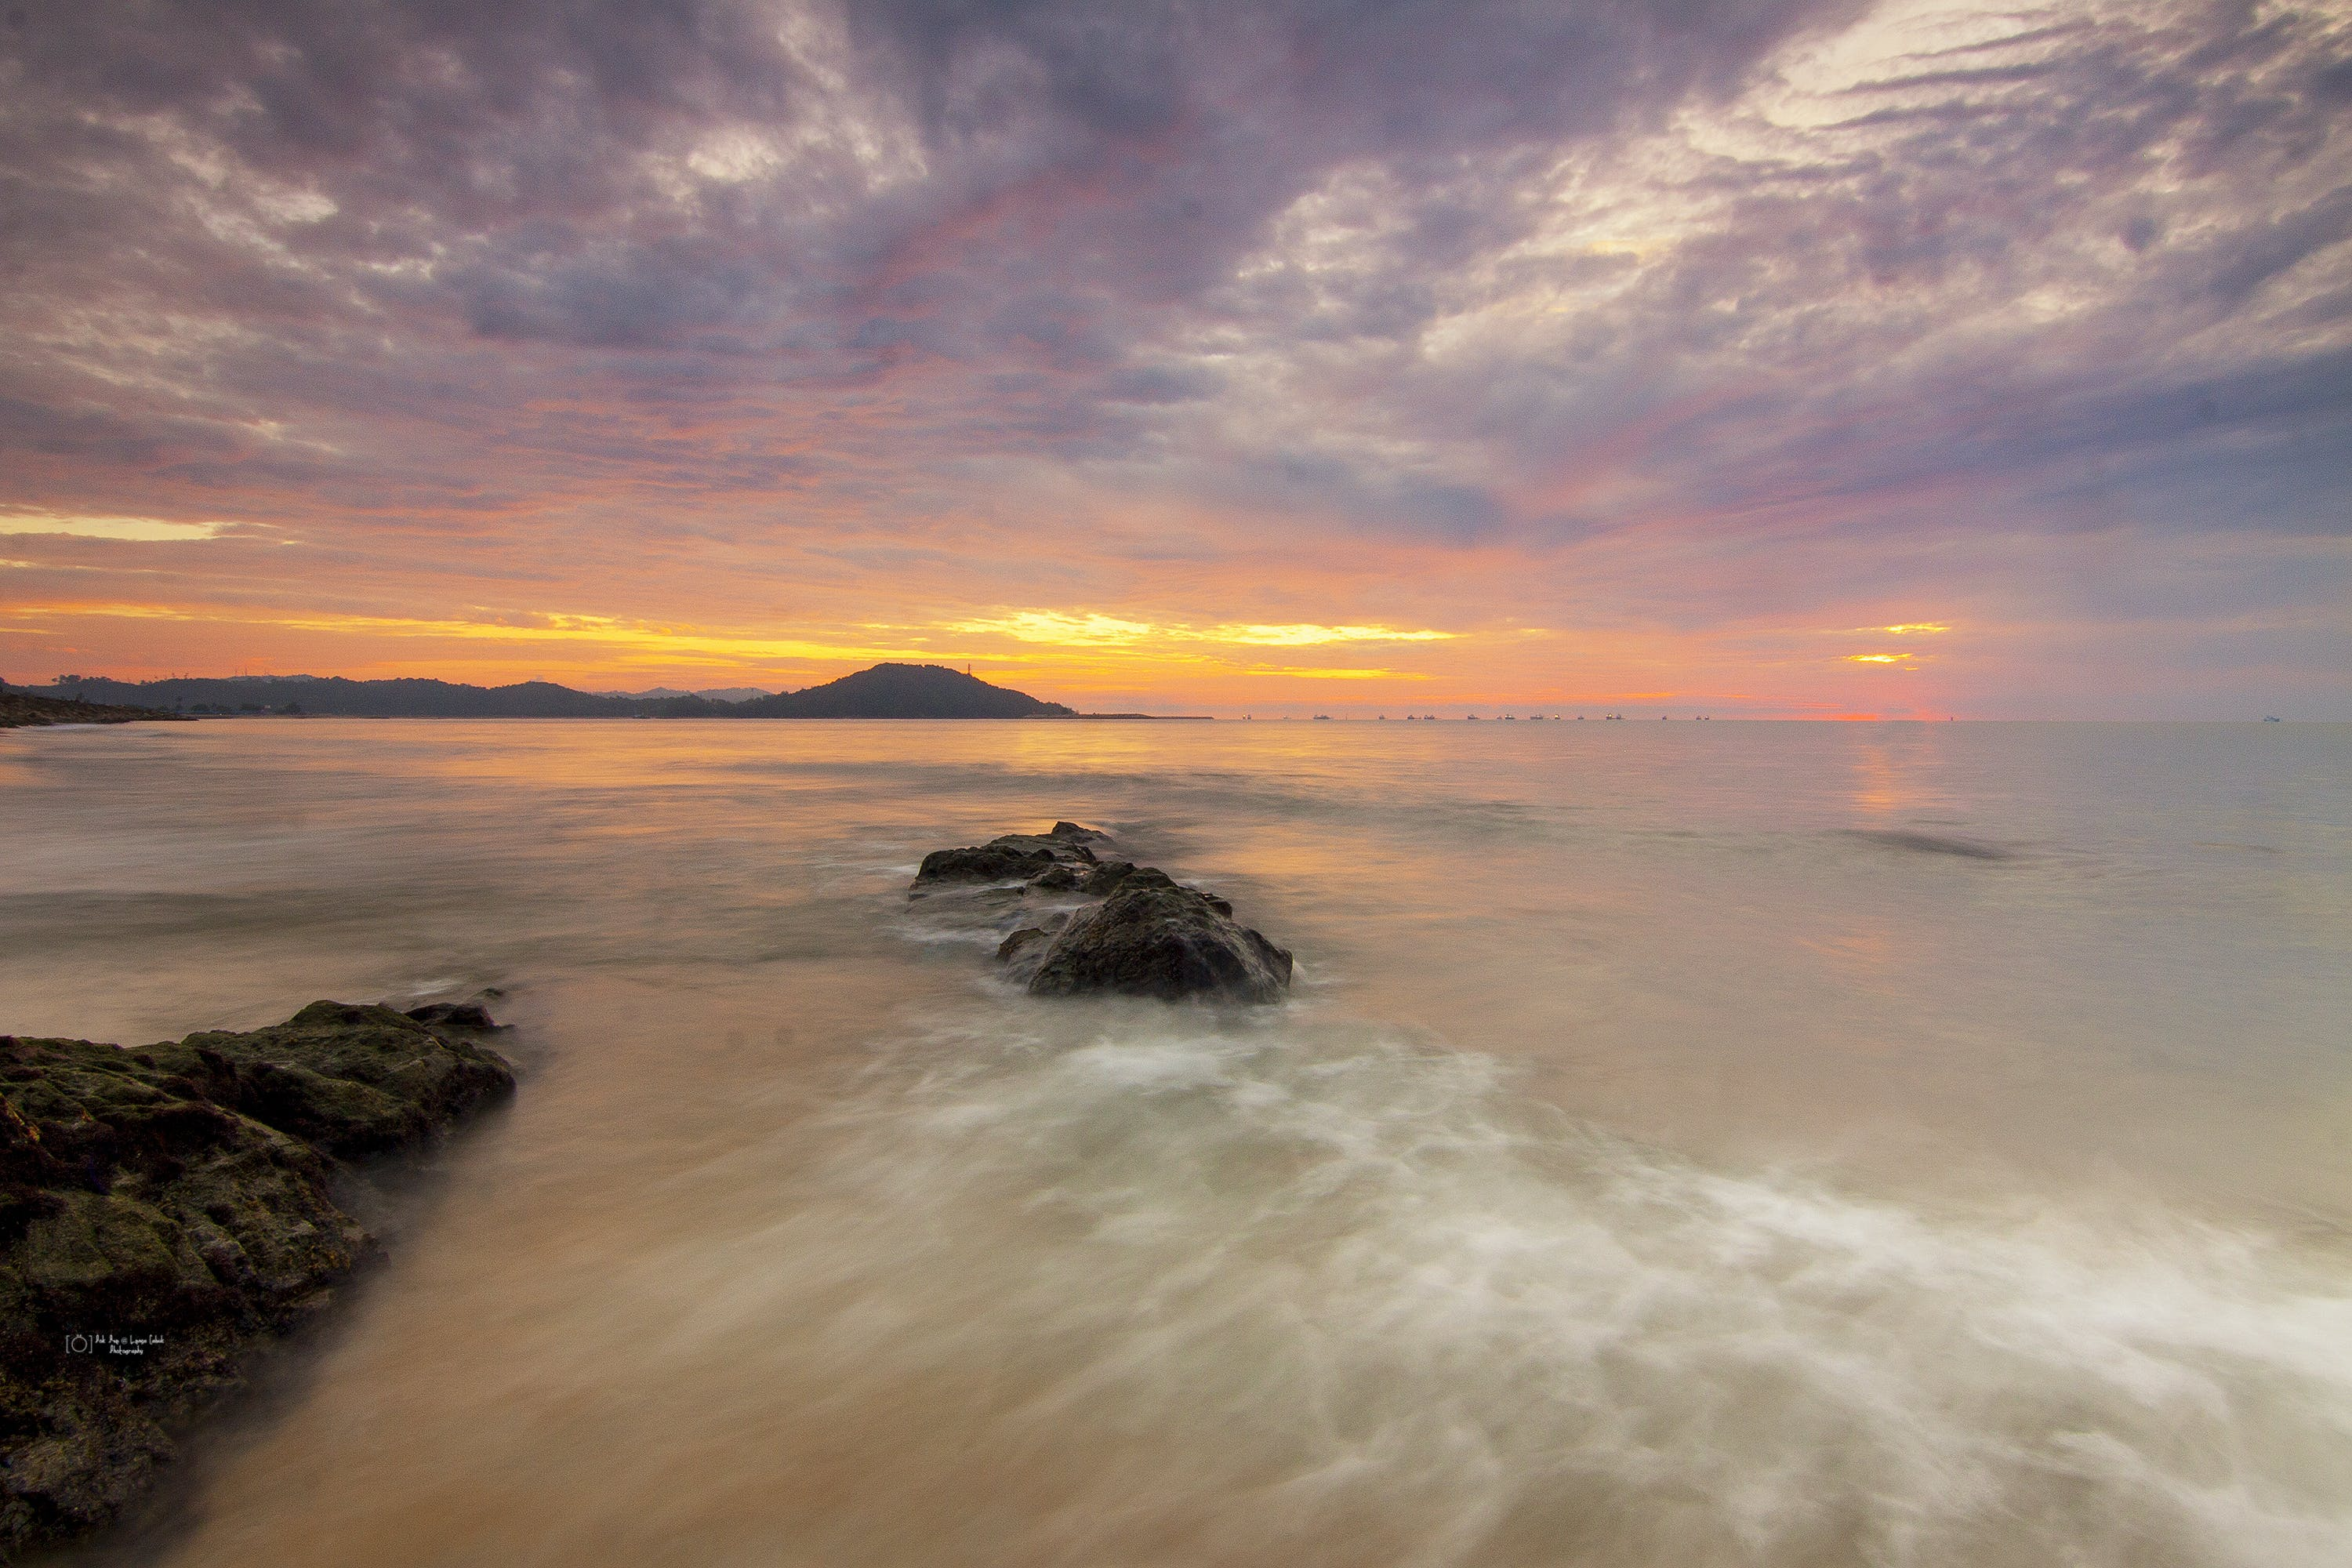 Time-lapse Photograph of Seashore during Golden Hour